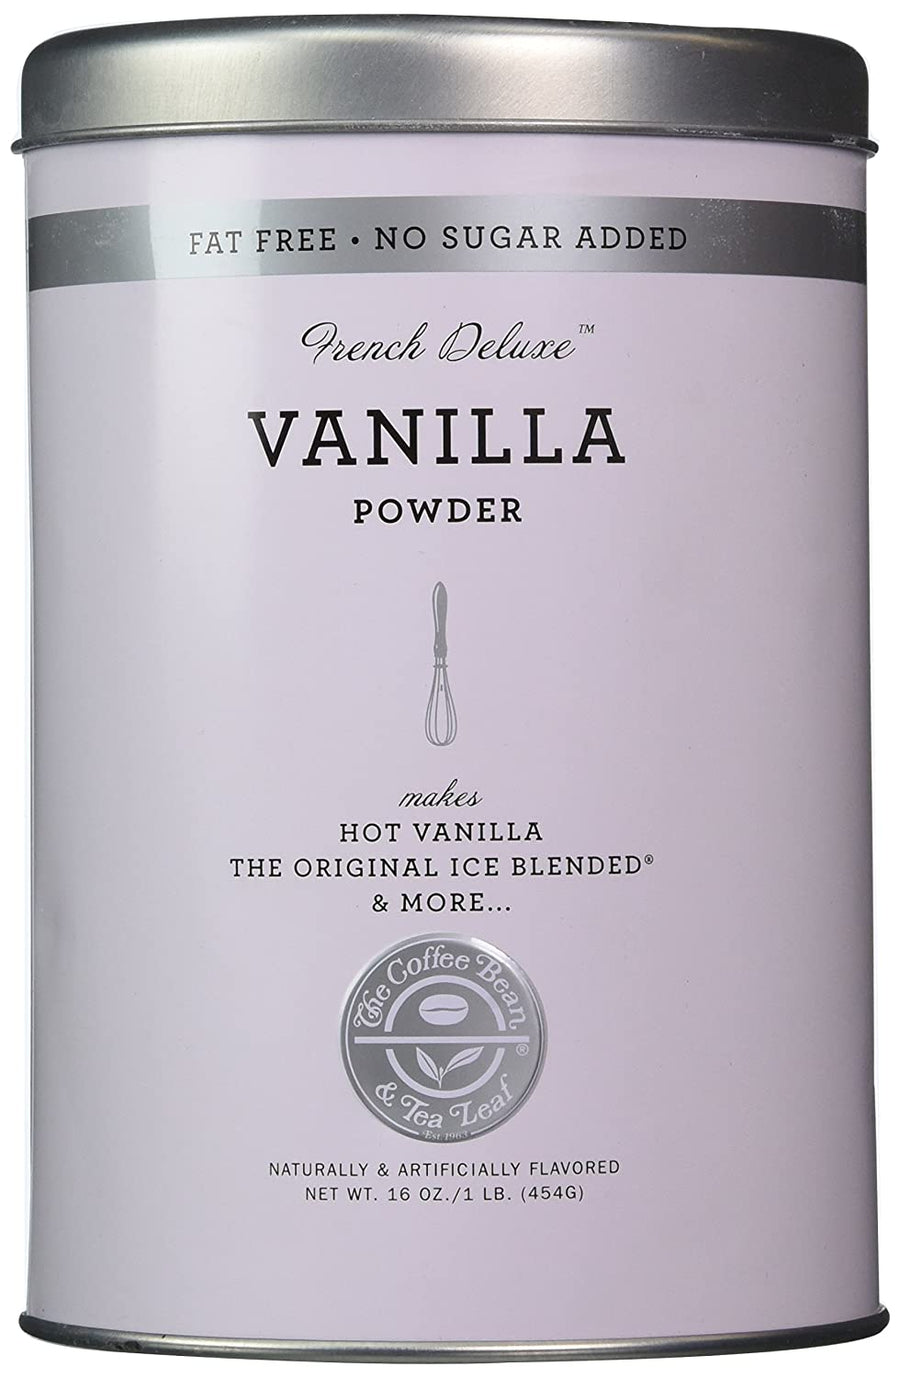 The Coffee Bean & Tea Leaf French Deluxe Vanilla Powder 16 Oz - iZiffy.com